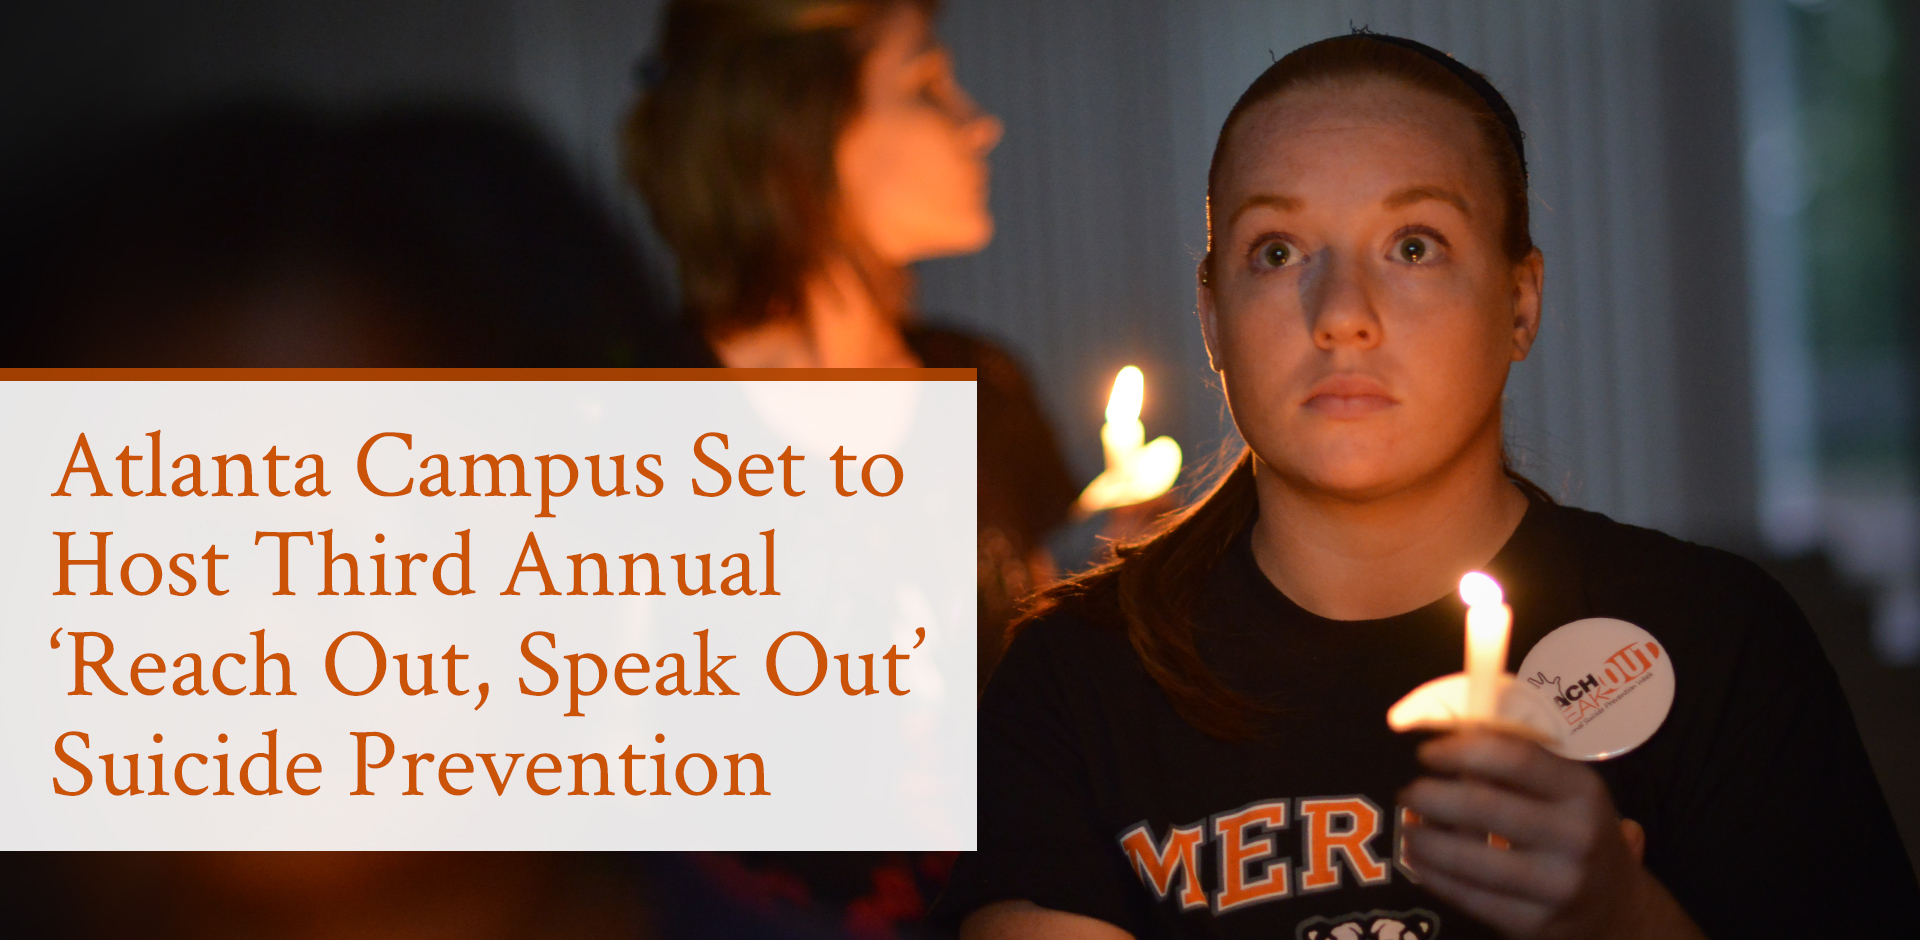 Atlanta Campus Set to Host Third Annual 'Reach Out, Speak Out' Suicide Prevention Initiative